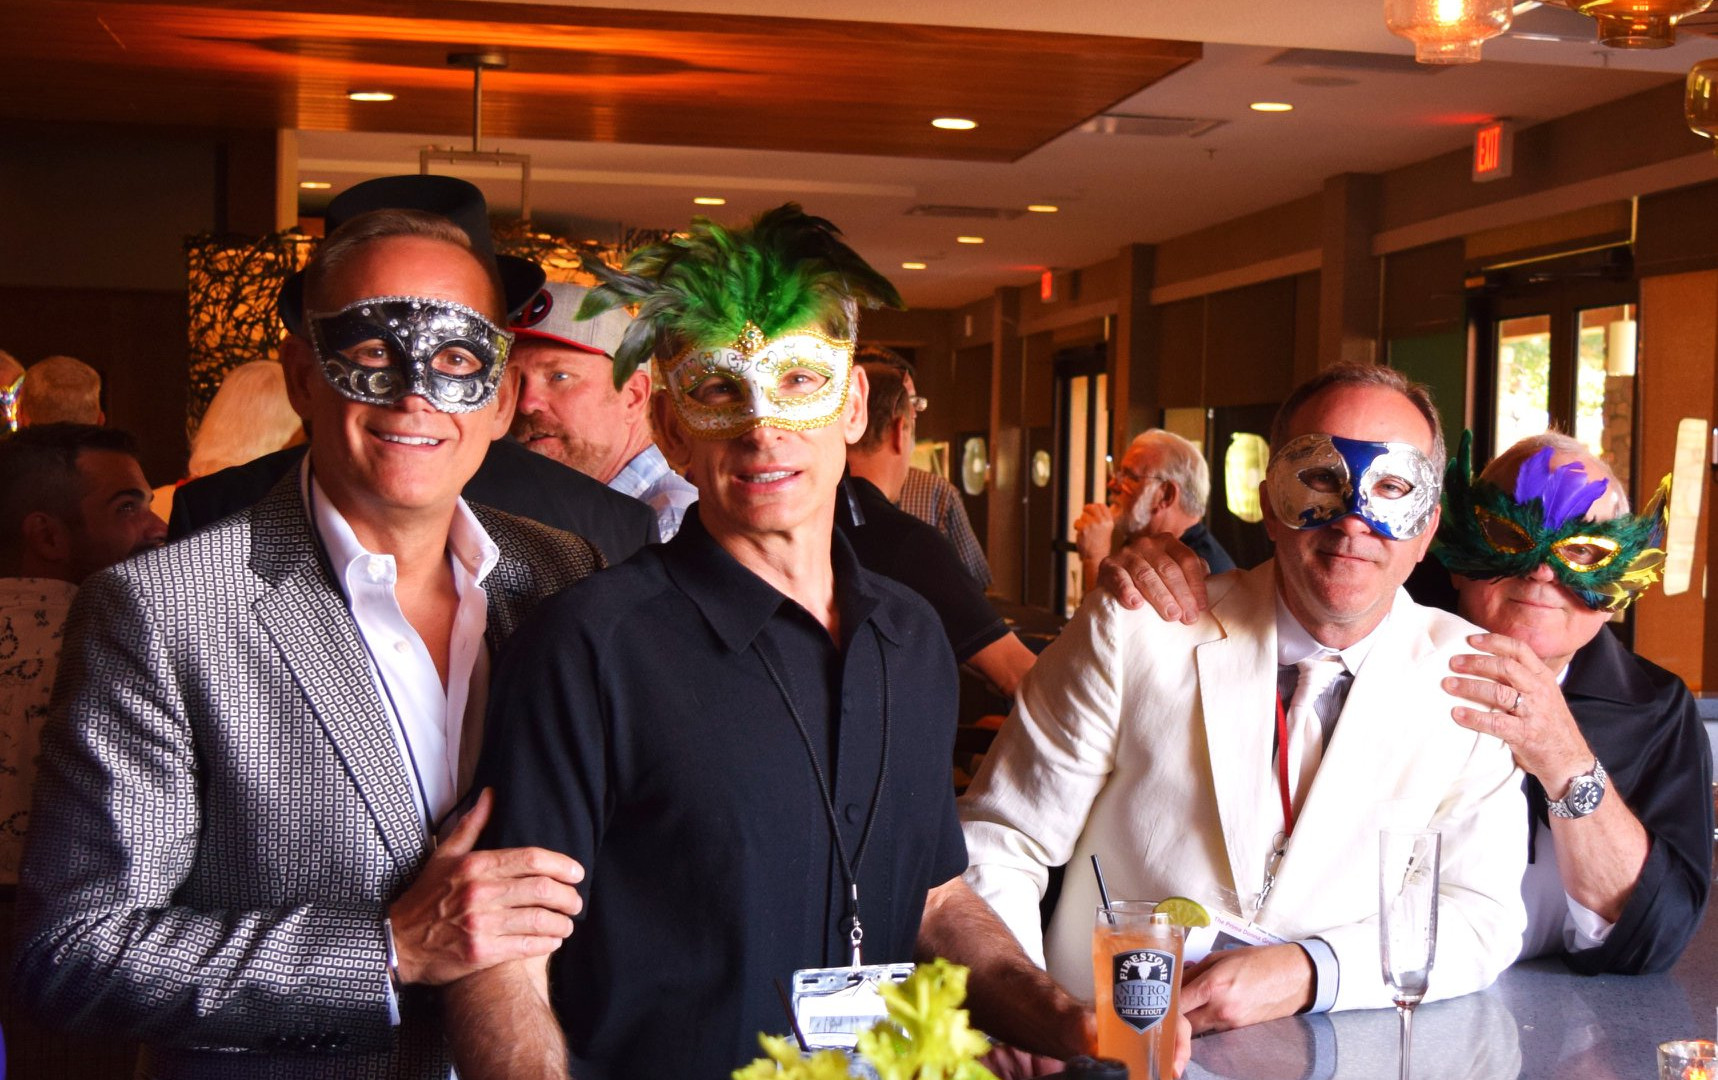 Masquerade Ball - who are these masked men.jpg